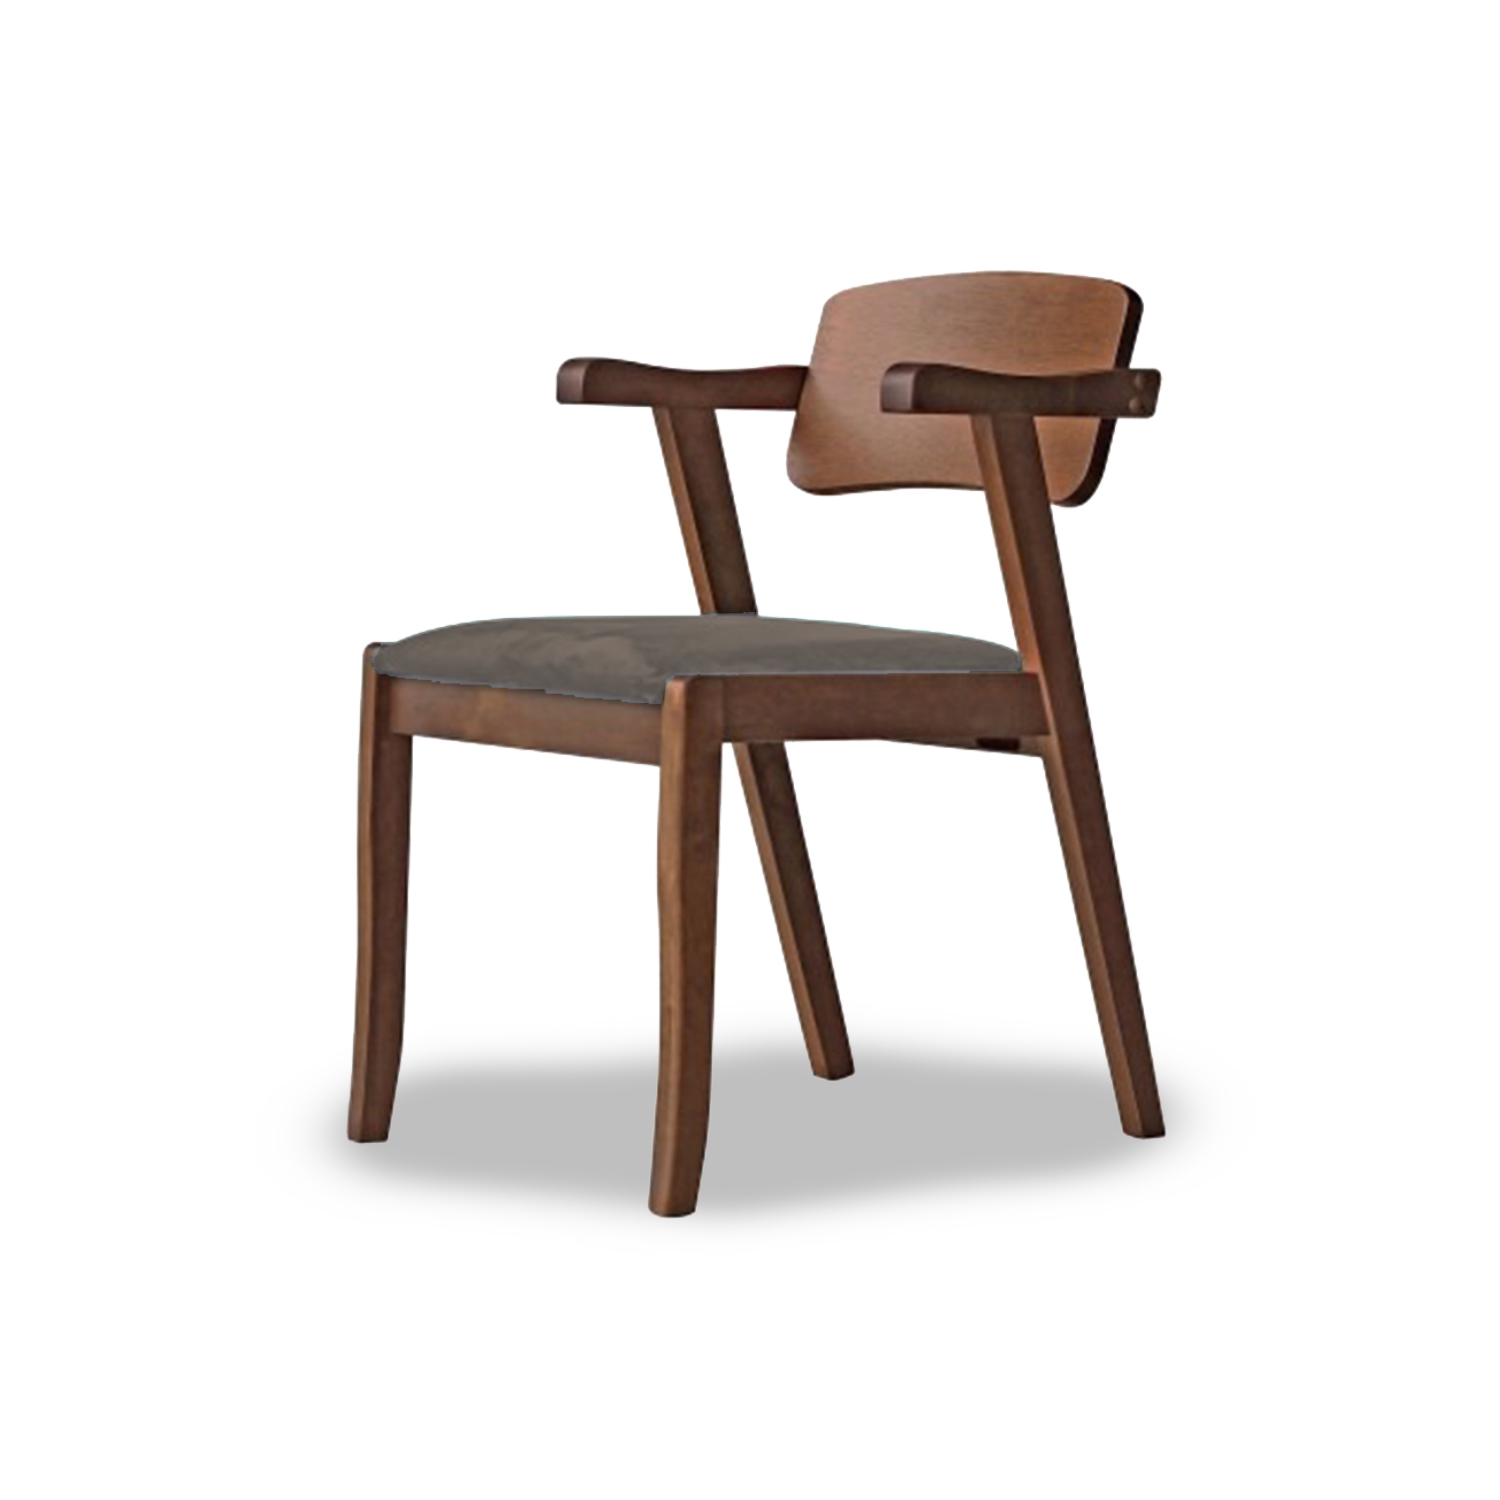 Dining Chair 15-5504 Brown